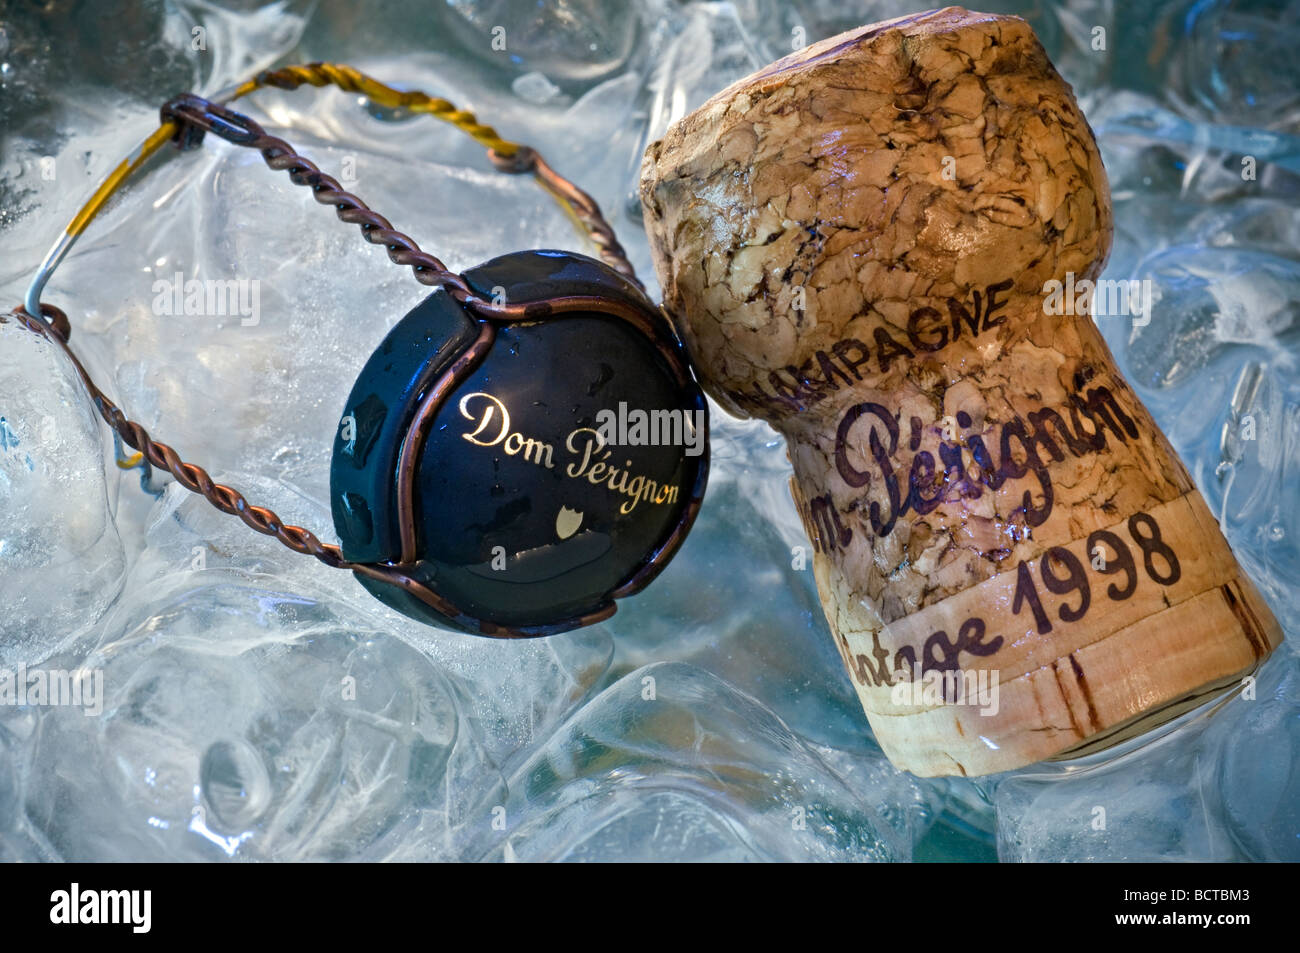 Dom Perignon wire retaining frame cap and vintage champagne cork in ice cooler - Stock Image